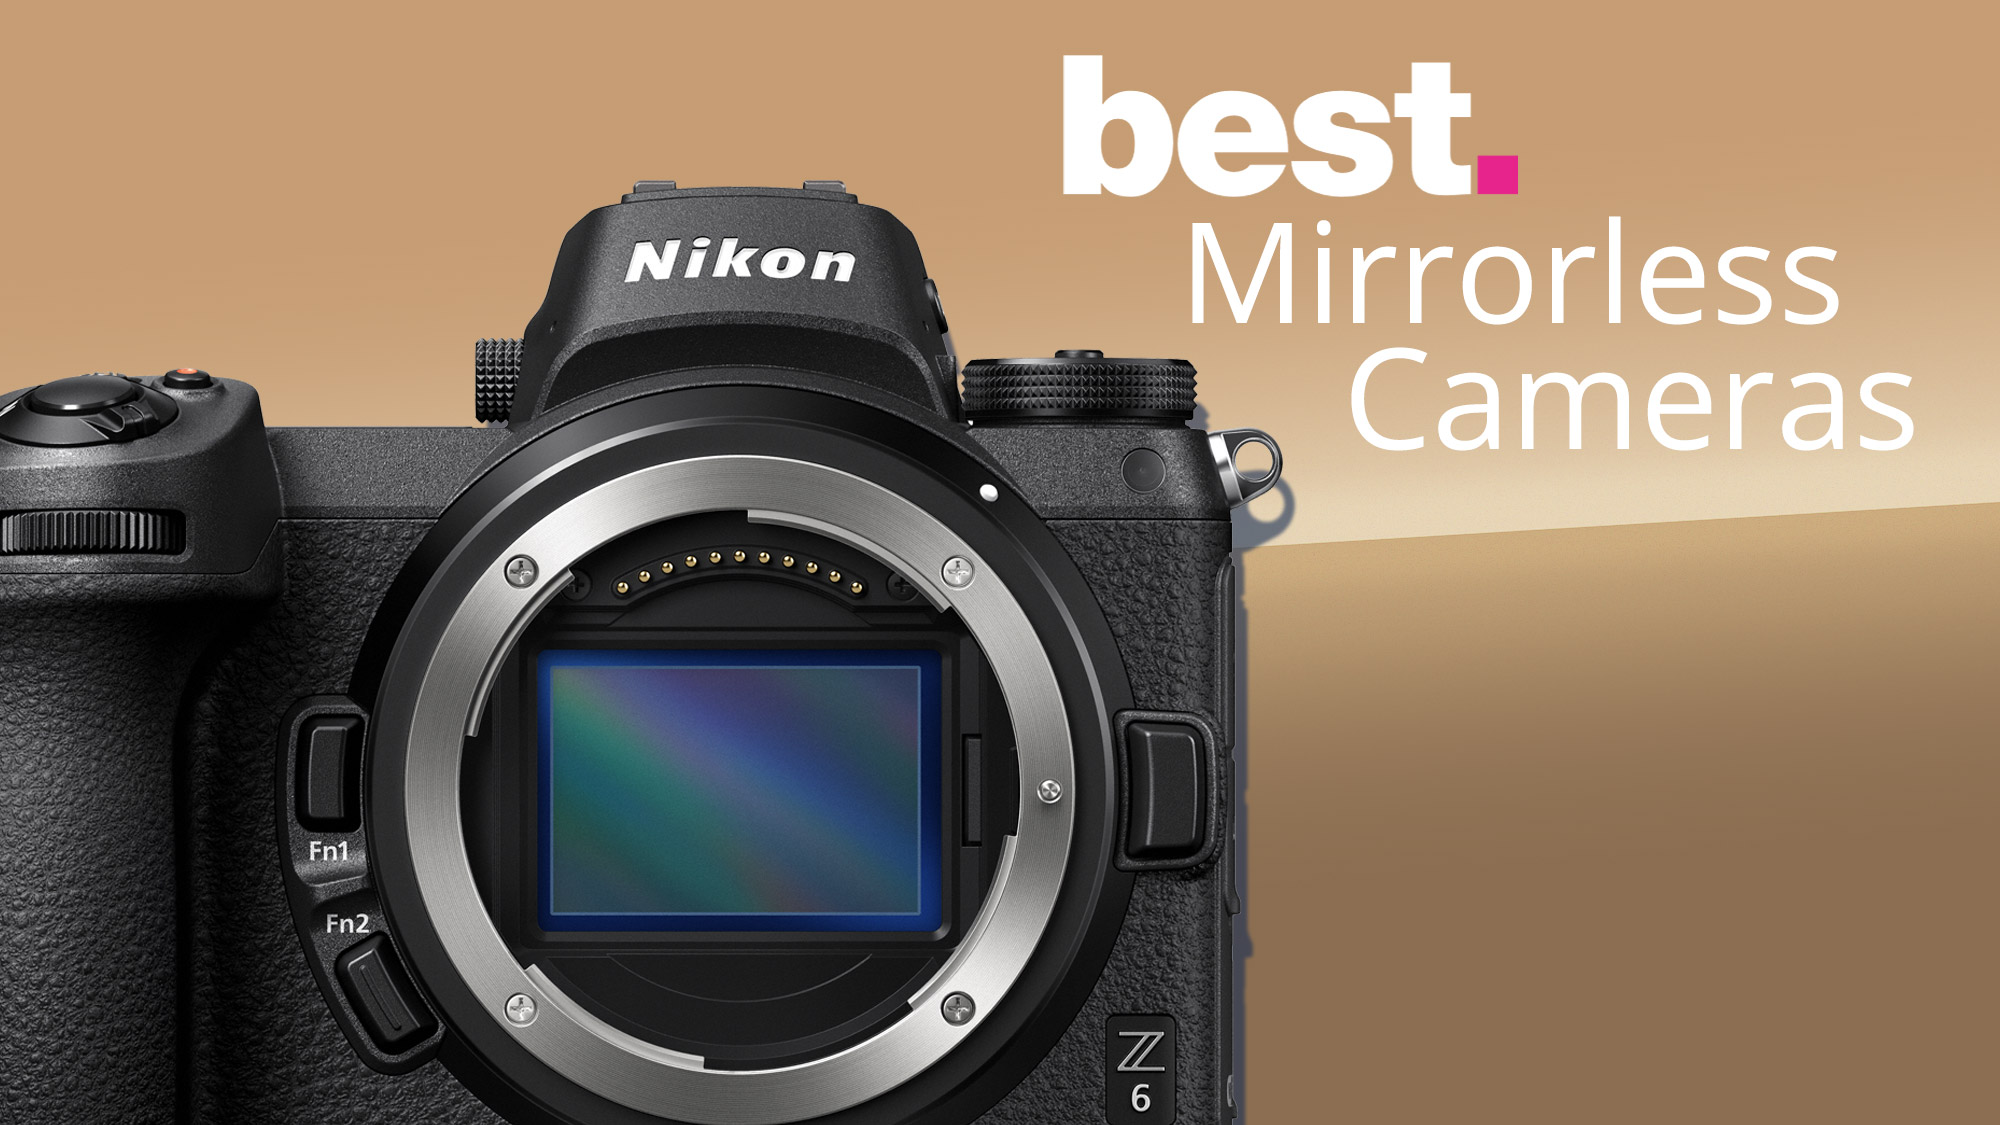 Best Mirrorless Camera 2021 Best mirrorless camera 2020: the 12 best models on the pla